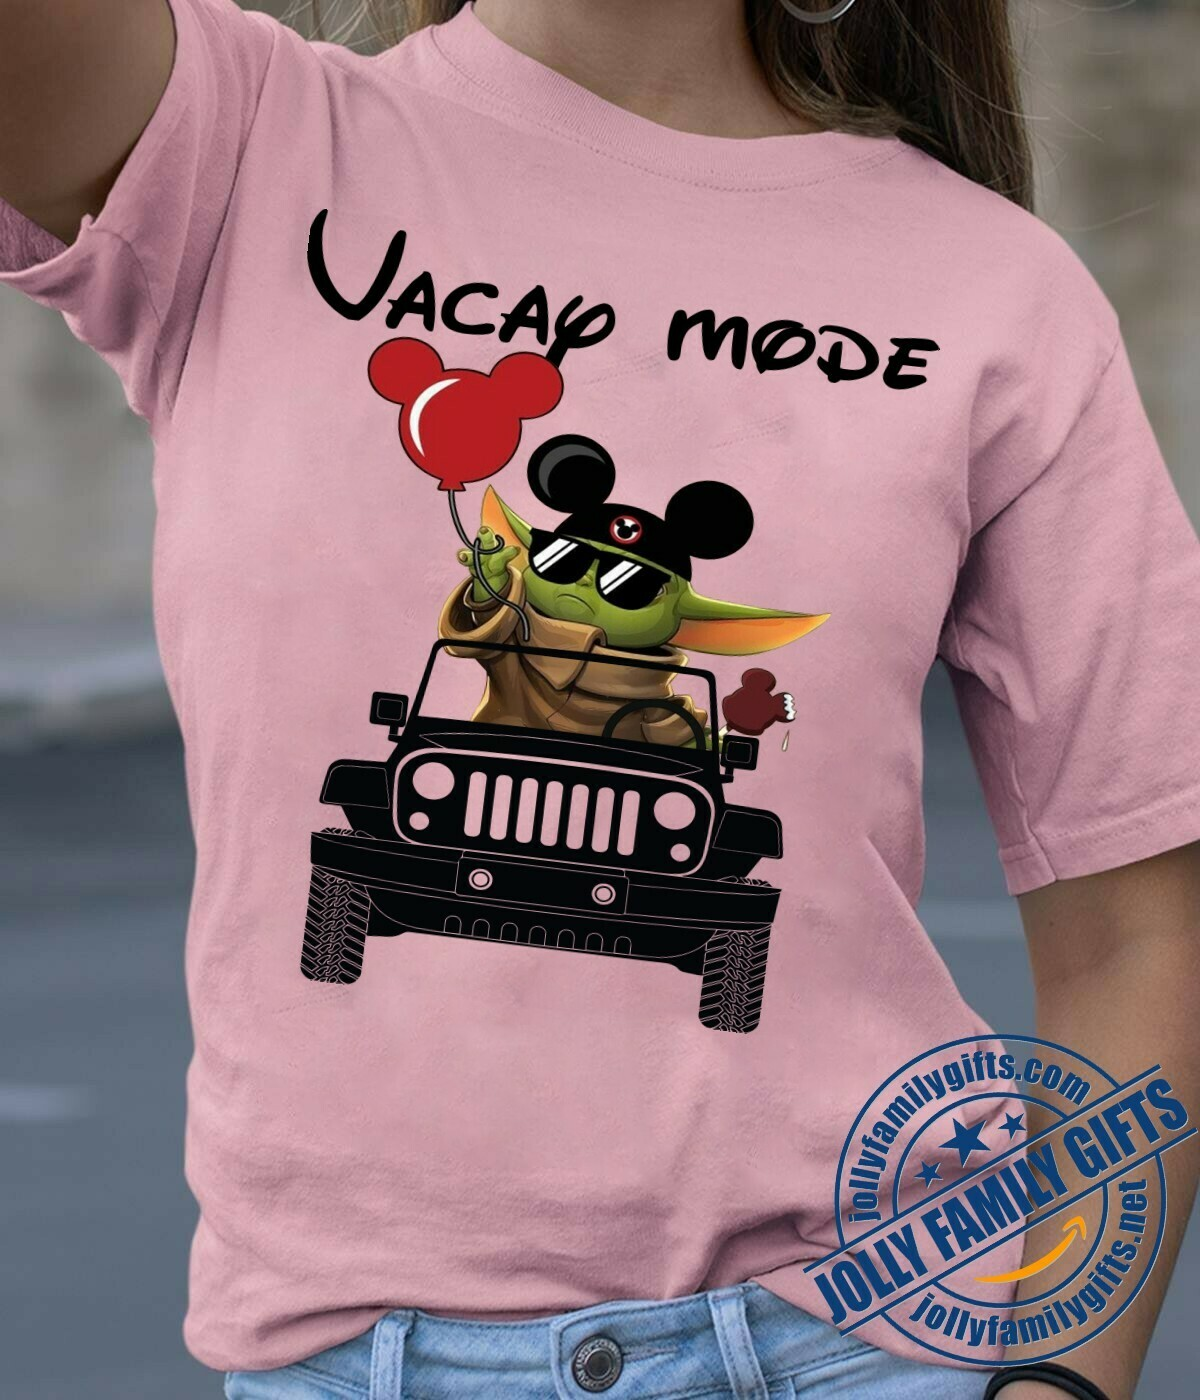 Vacay mode Baby Yoda Mickey Balloon Jeep The Mandalorian Star Wars Walt Disney Spring break 2020 Family Vacation Go to Disney World  Unisex T-Shirt Hoodie Sweatshirt Sweater Plus Size for Ladies Women